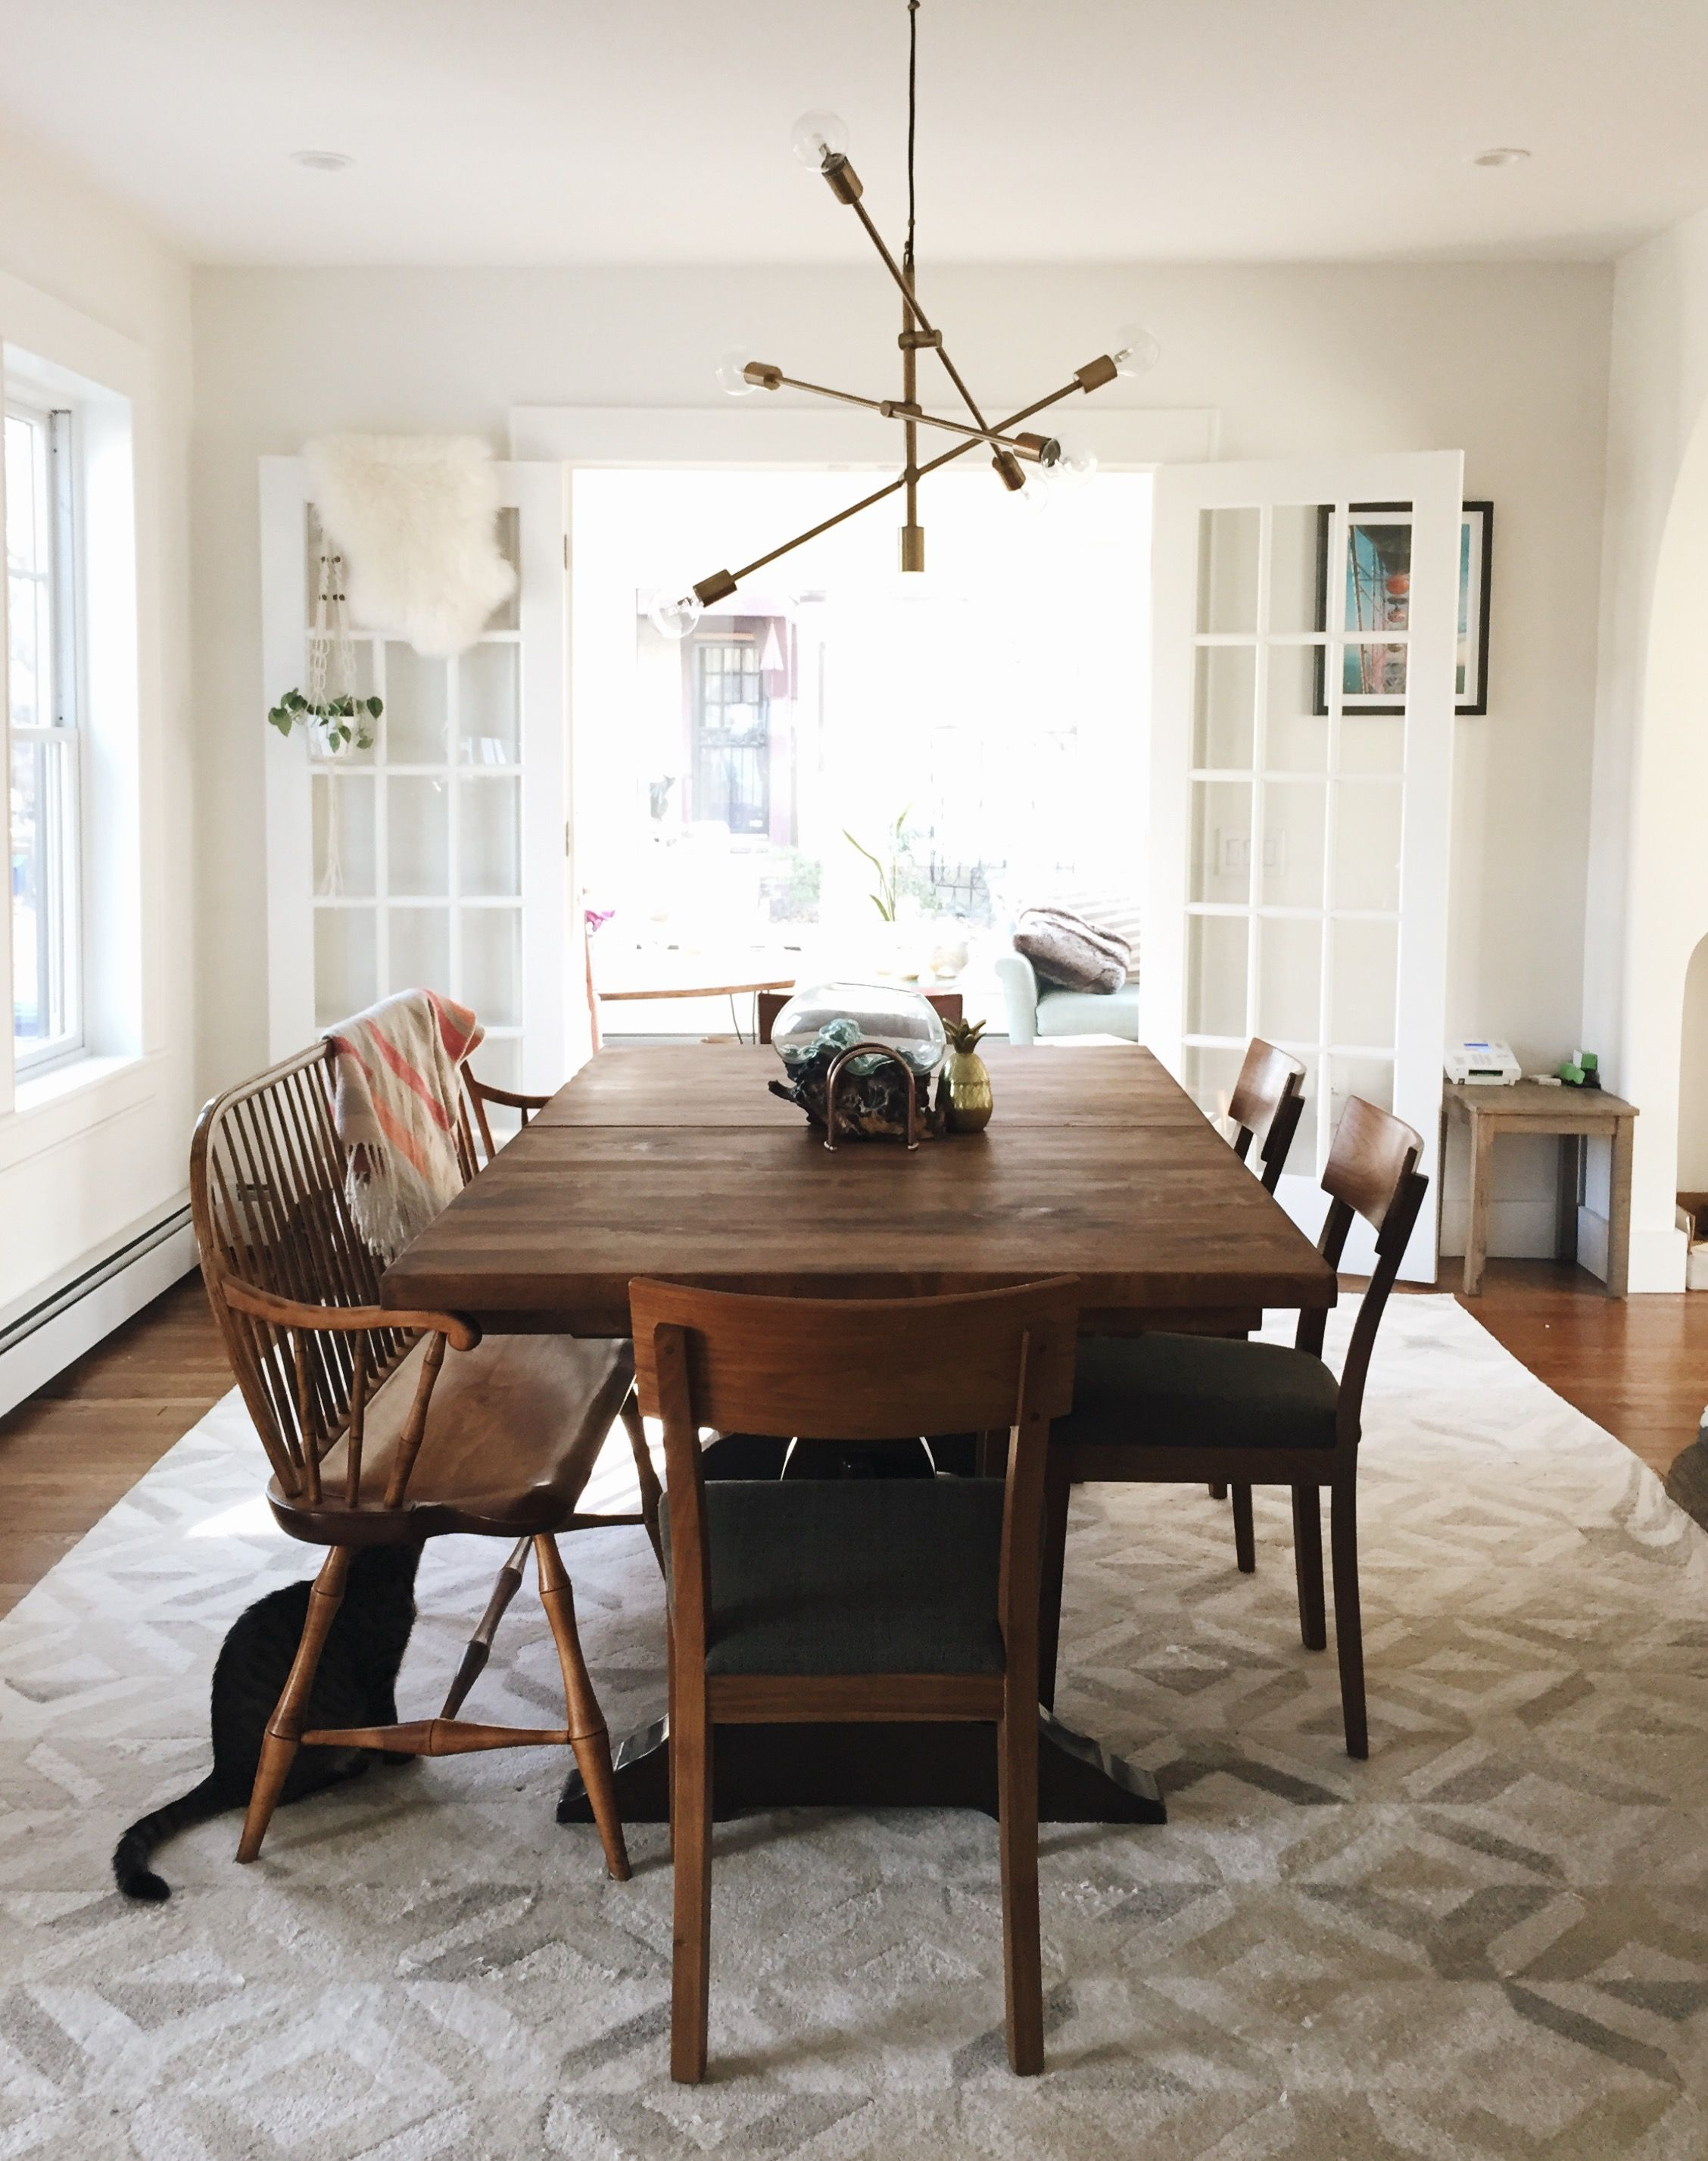 Our Dining Room! West Elm Marquis Rug West Elm Mobile Pendant Craigslist  Table, Room And Board Chairs, (from Craigslist) Craigslist Bench, Ikea  Lambskin, ...